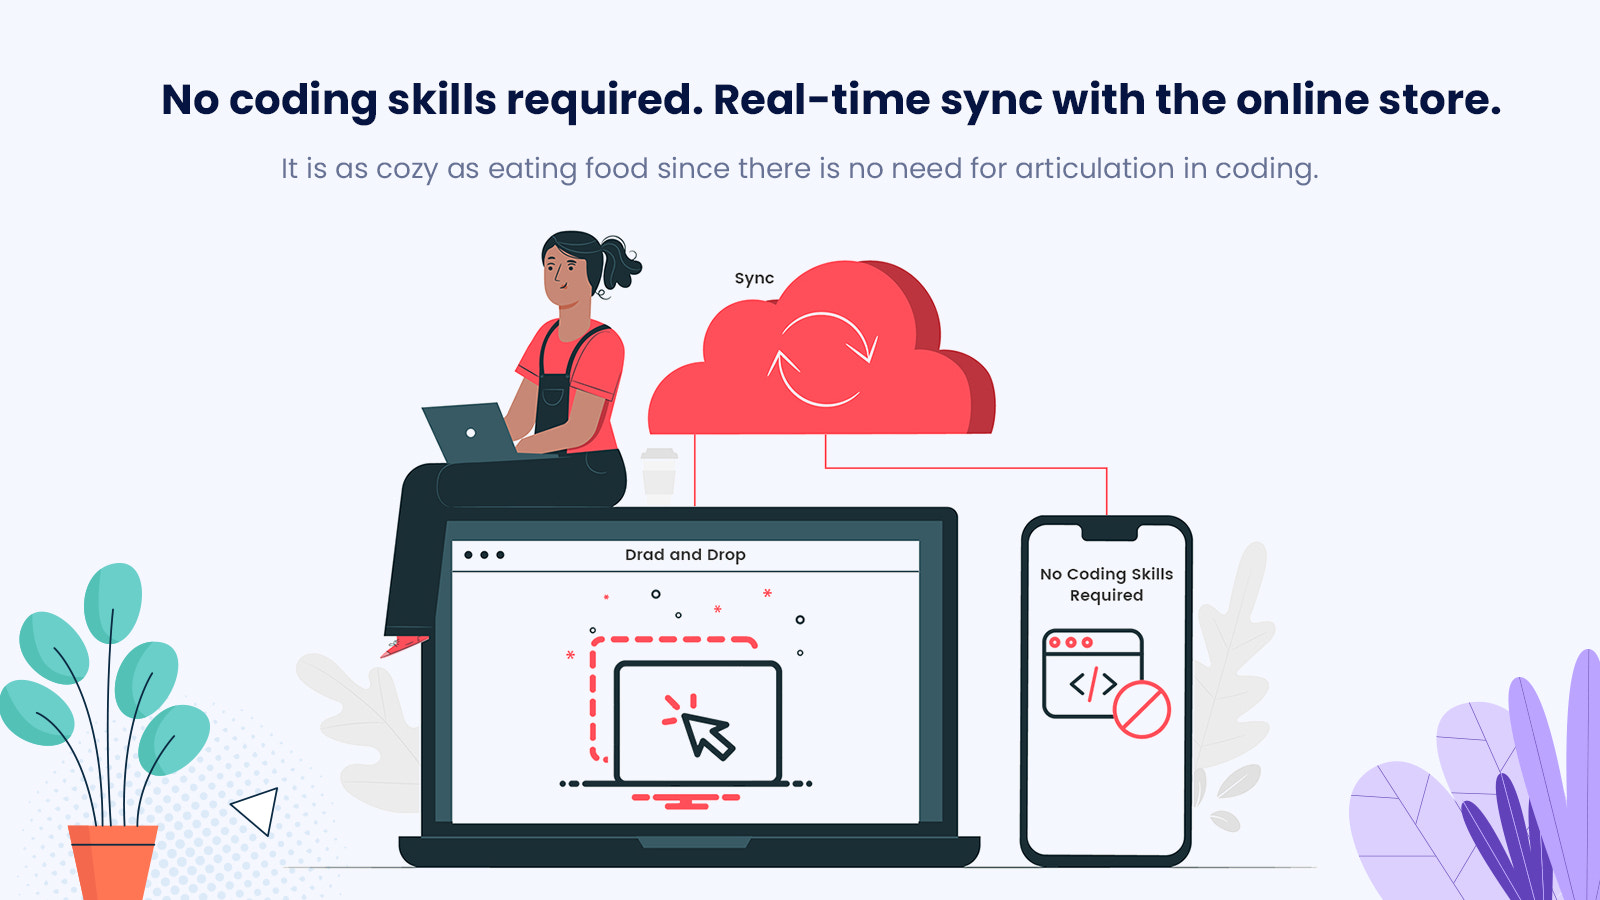 No coding skills required for app builder